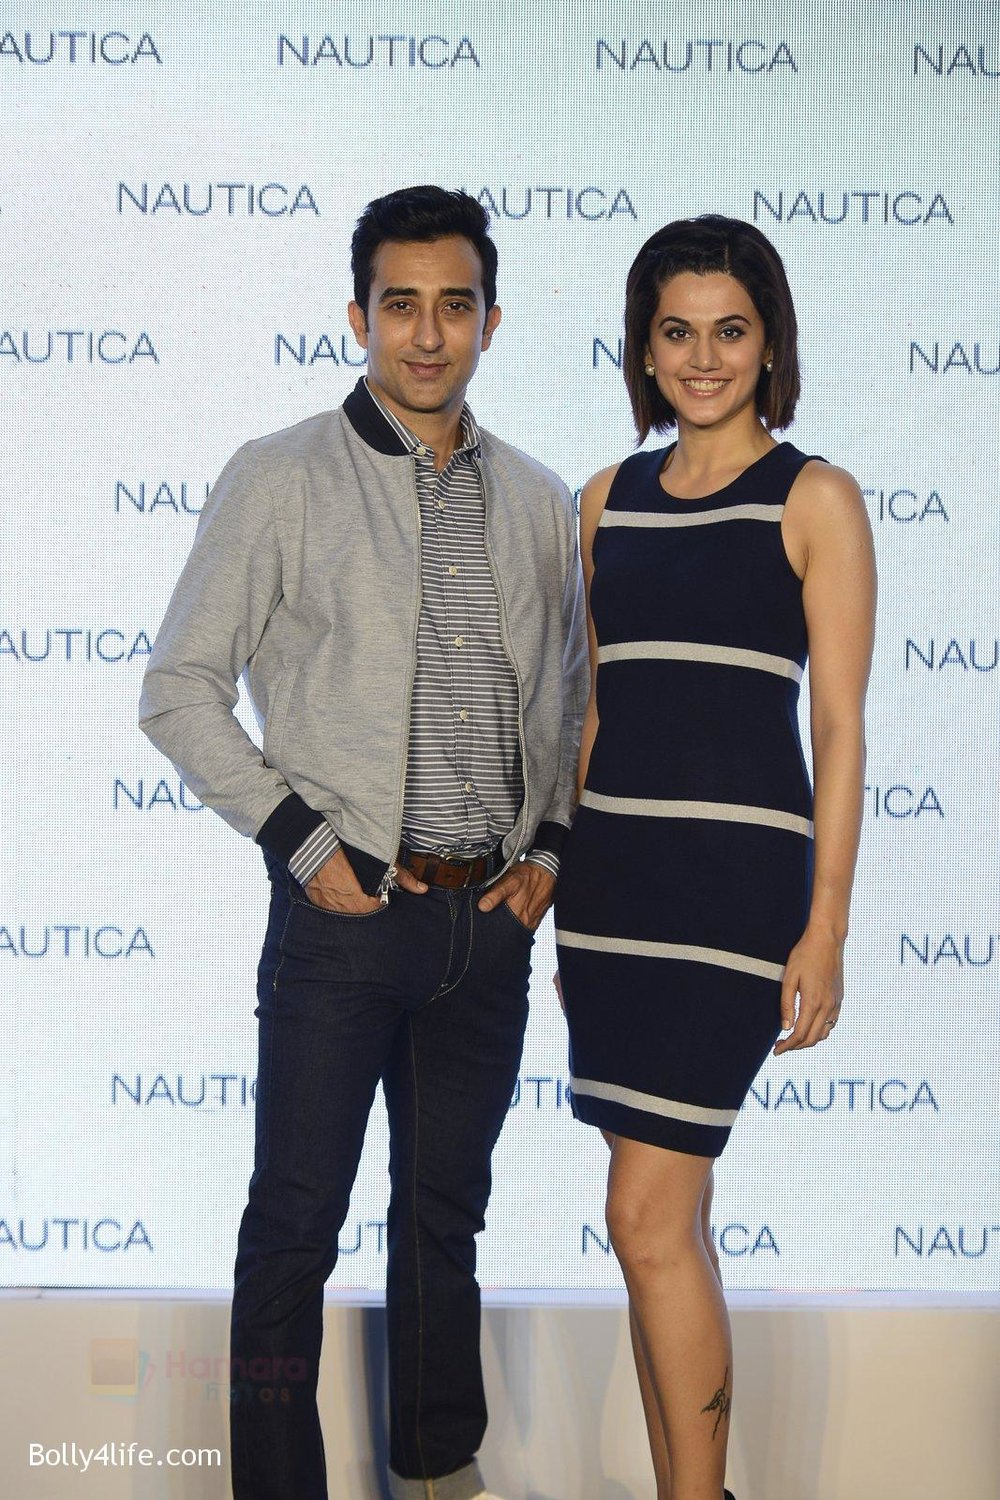 Taapsee-pannu-and-rahul-khanna-at-nautica-event-on-28th-Sept-2016-44.jpg